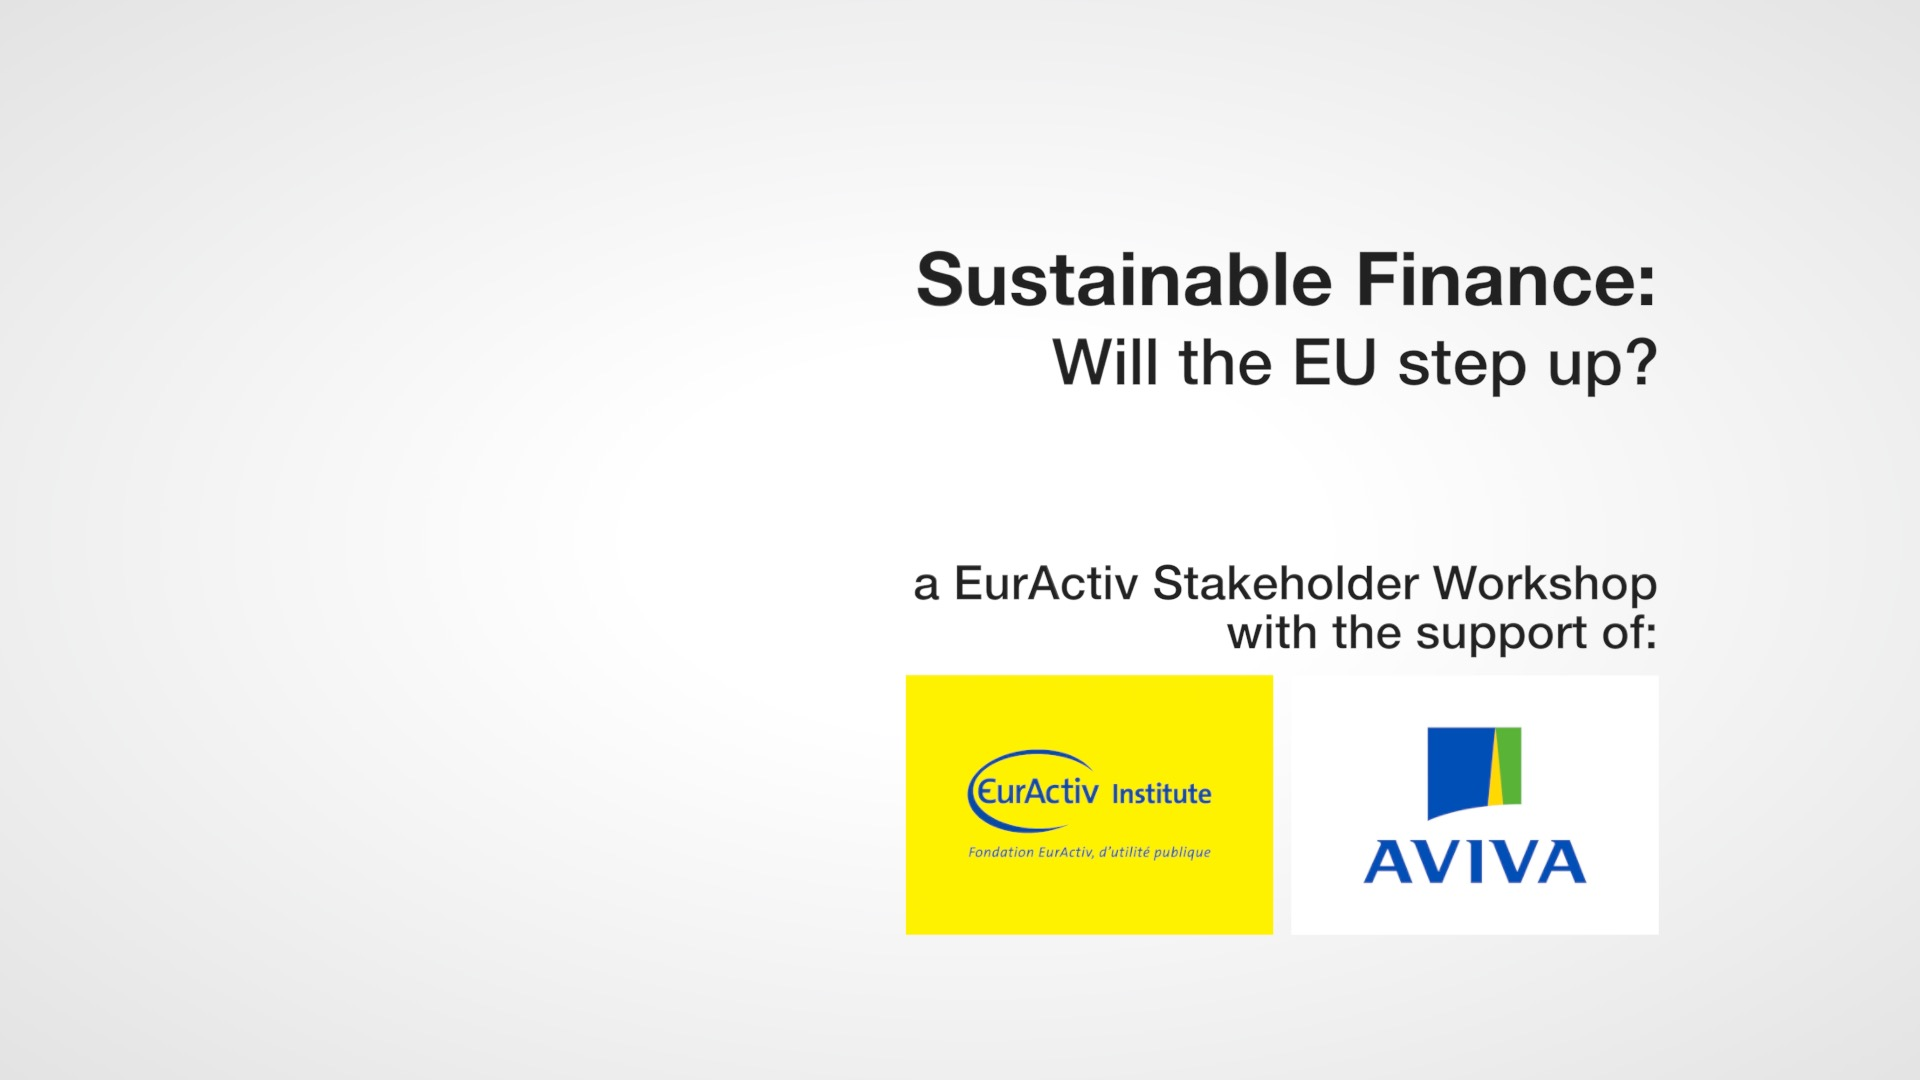 Sustainable finance: Will the EU step up?